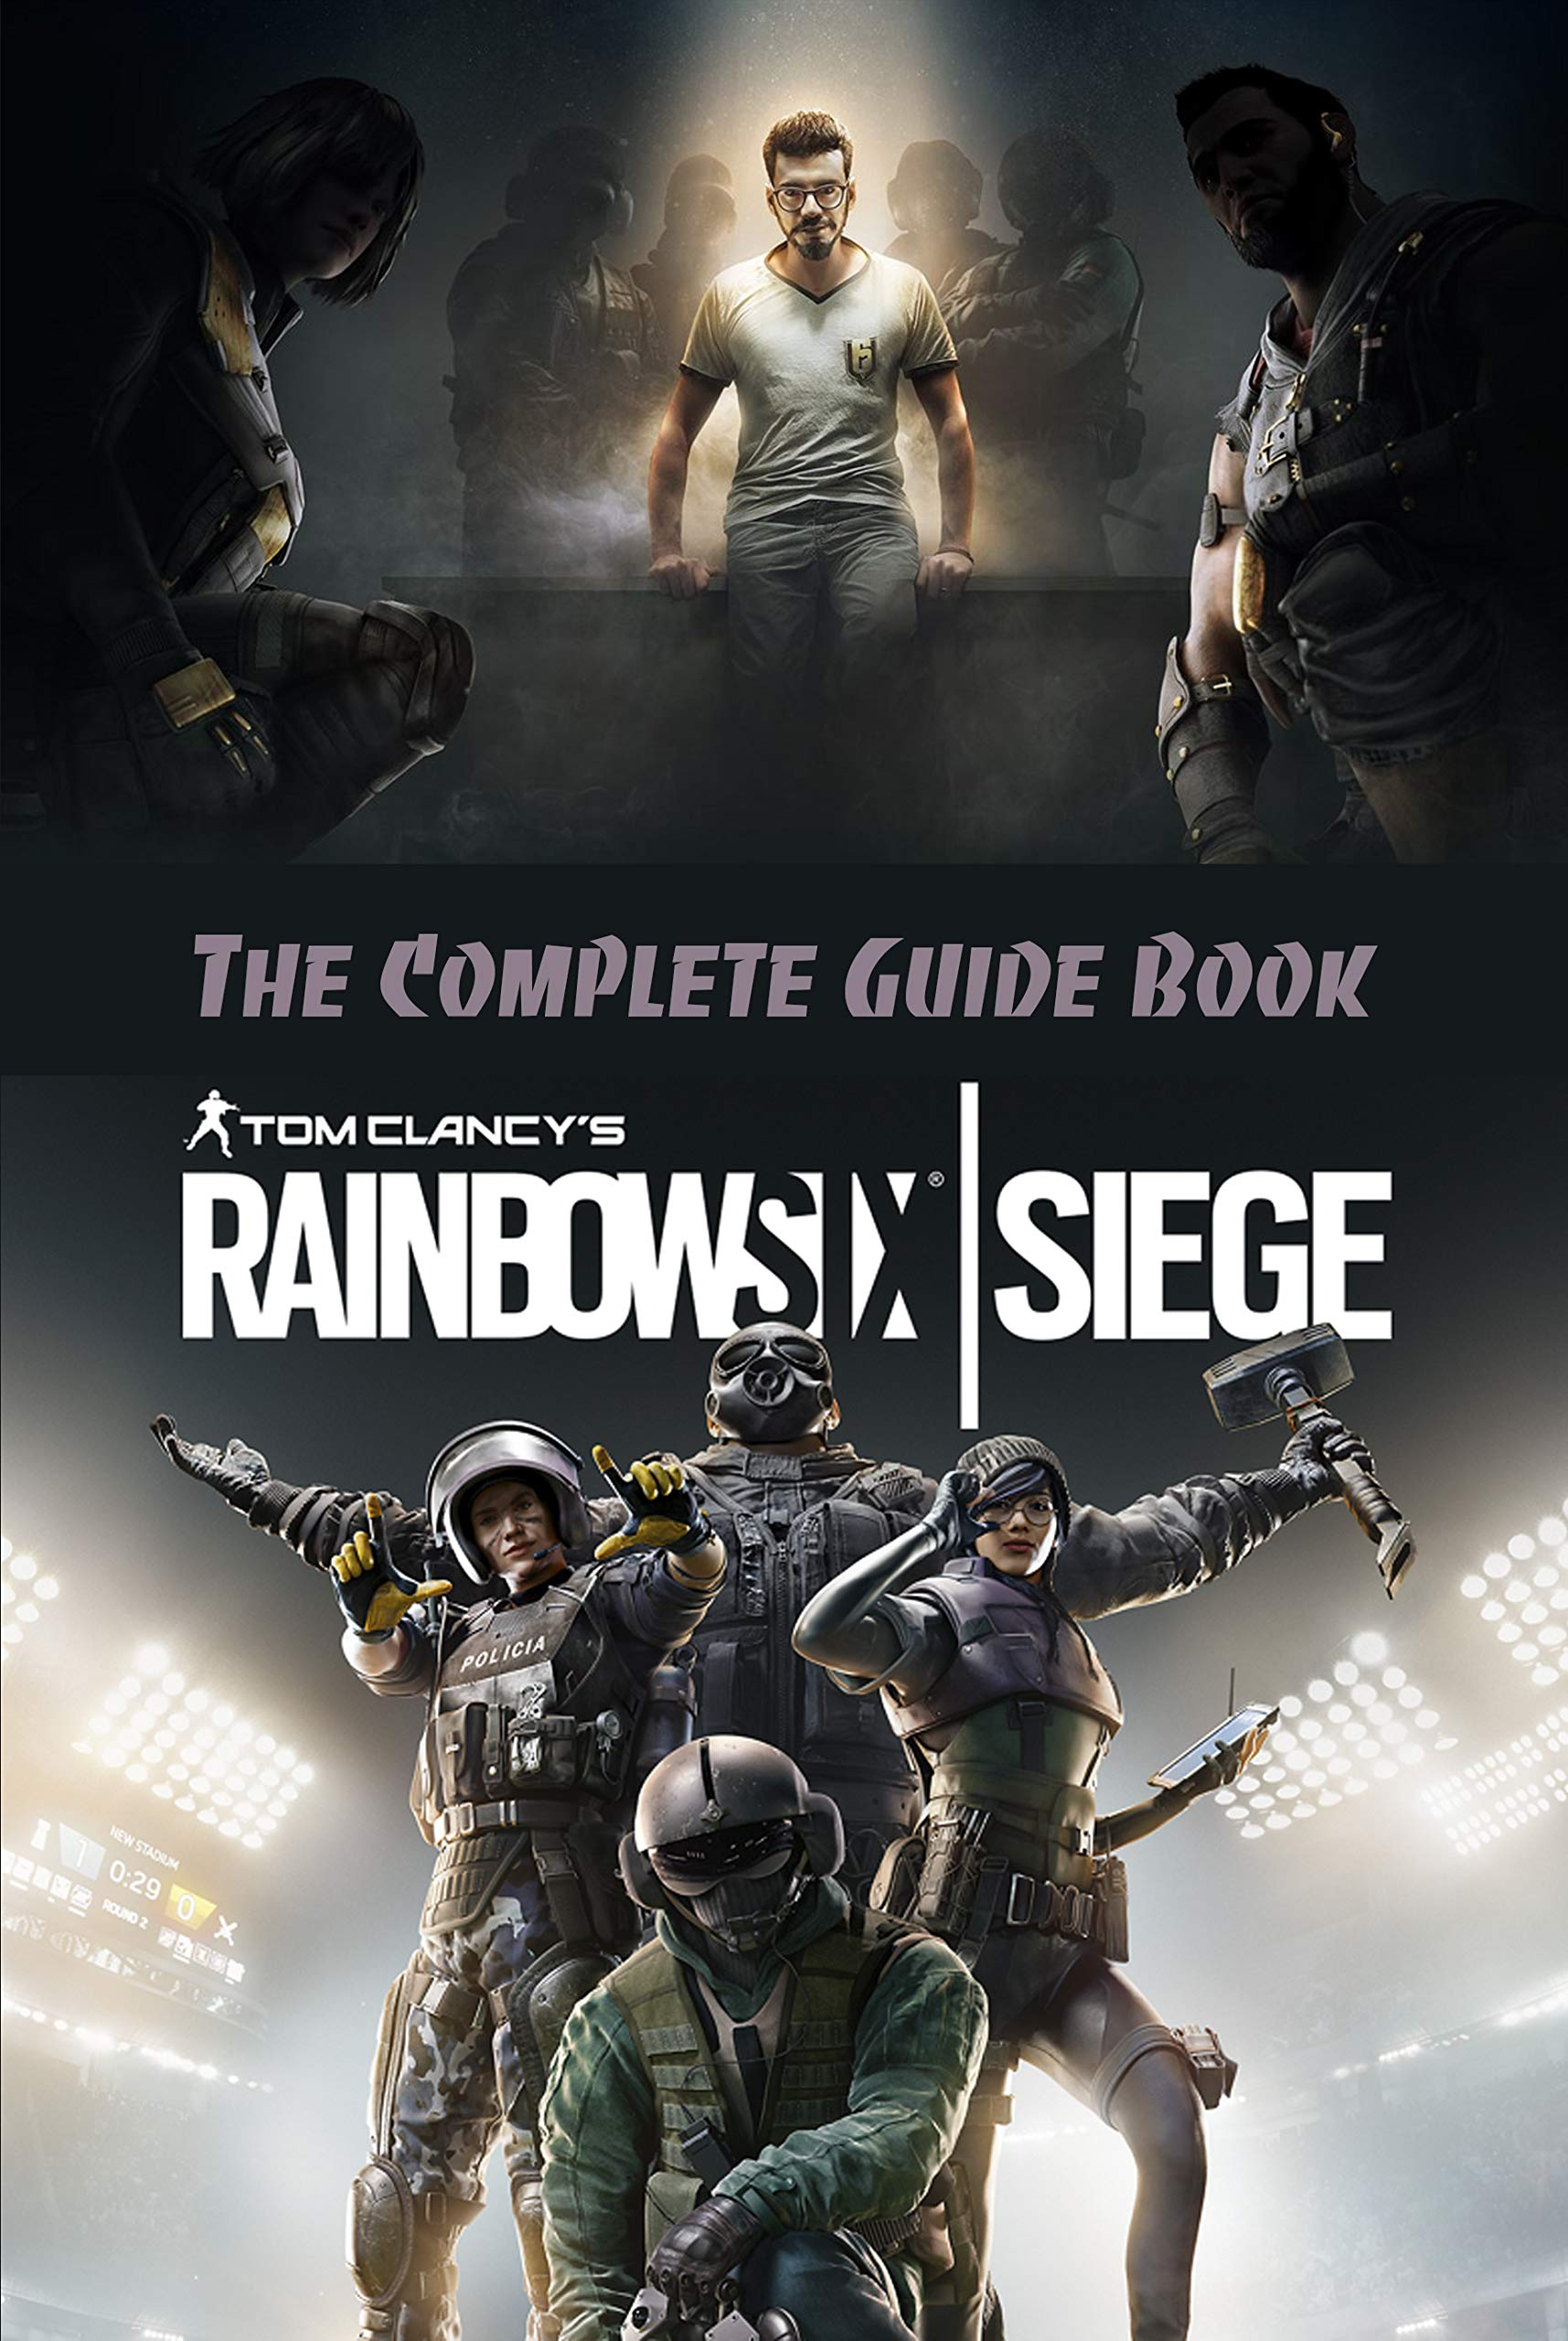 TomClancy's Rainbow Six: Siege: The Complete Guide Book: Travel Game Book